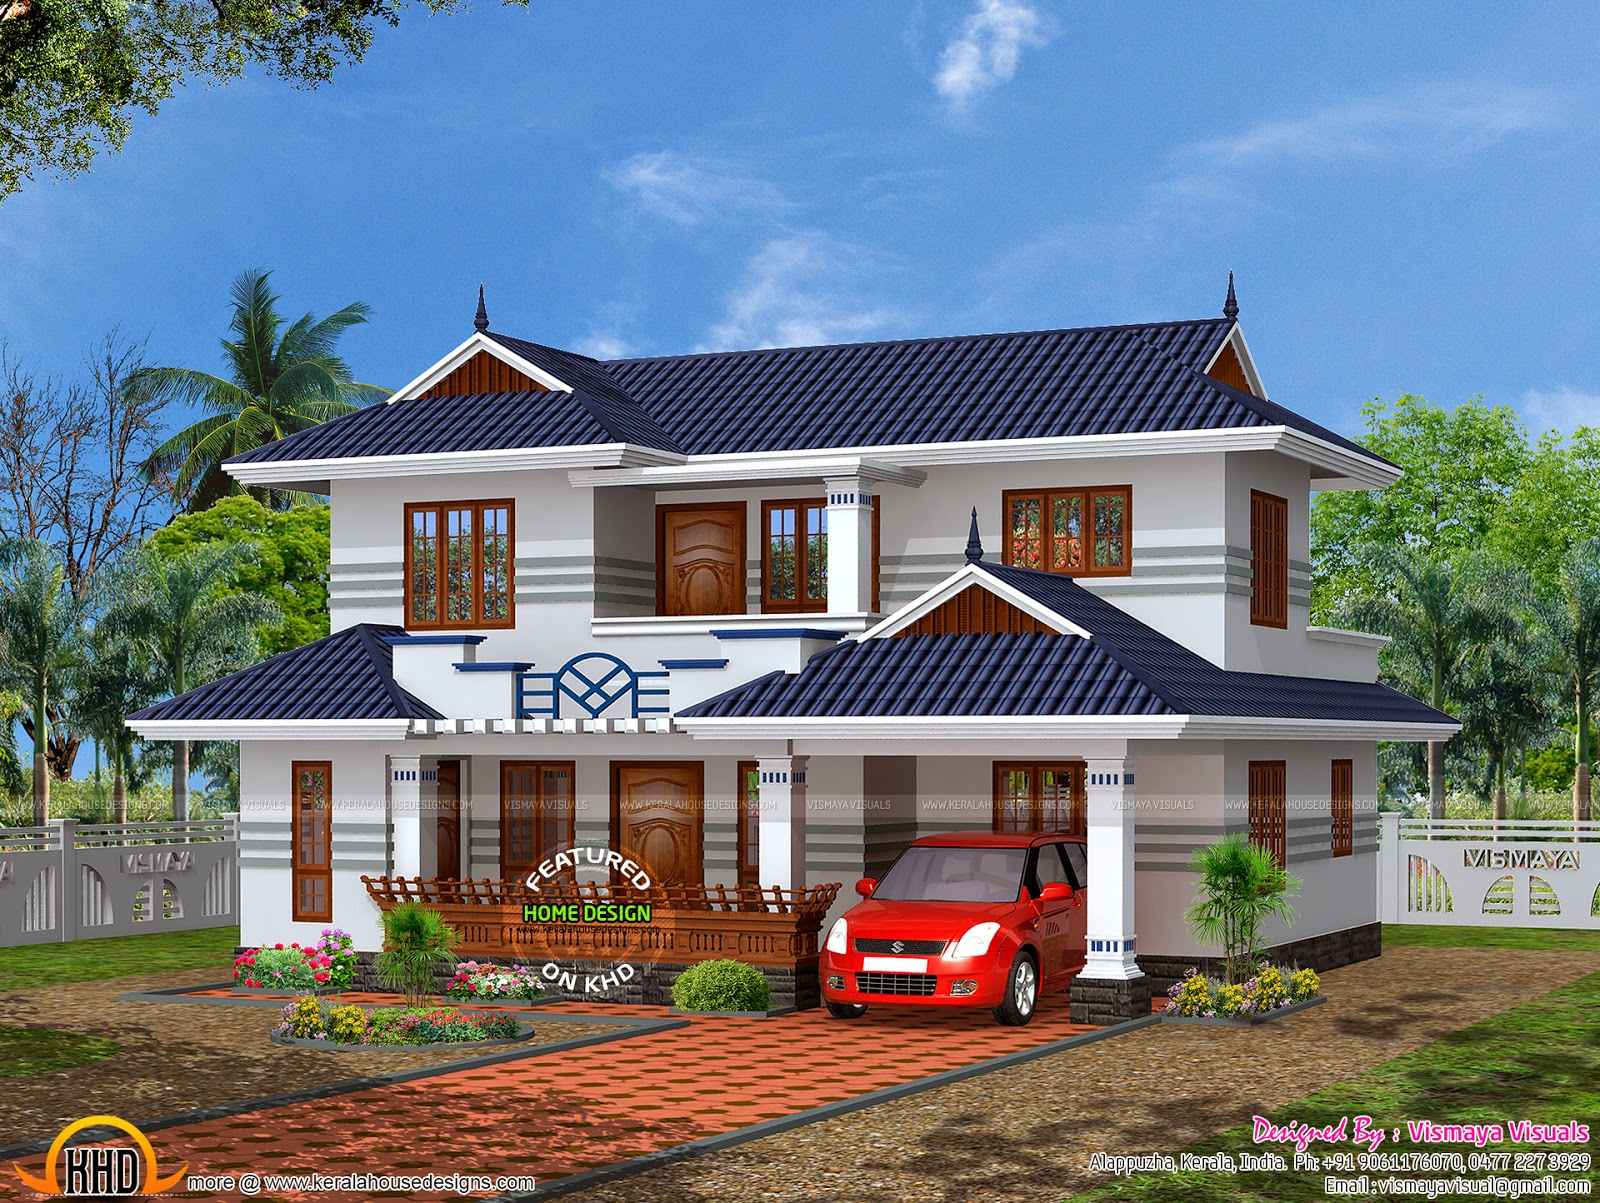 Typical kerala house plan kerala home design and floor plans for Kerala model house photos with details